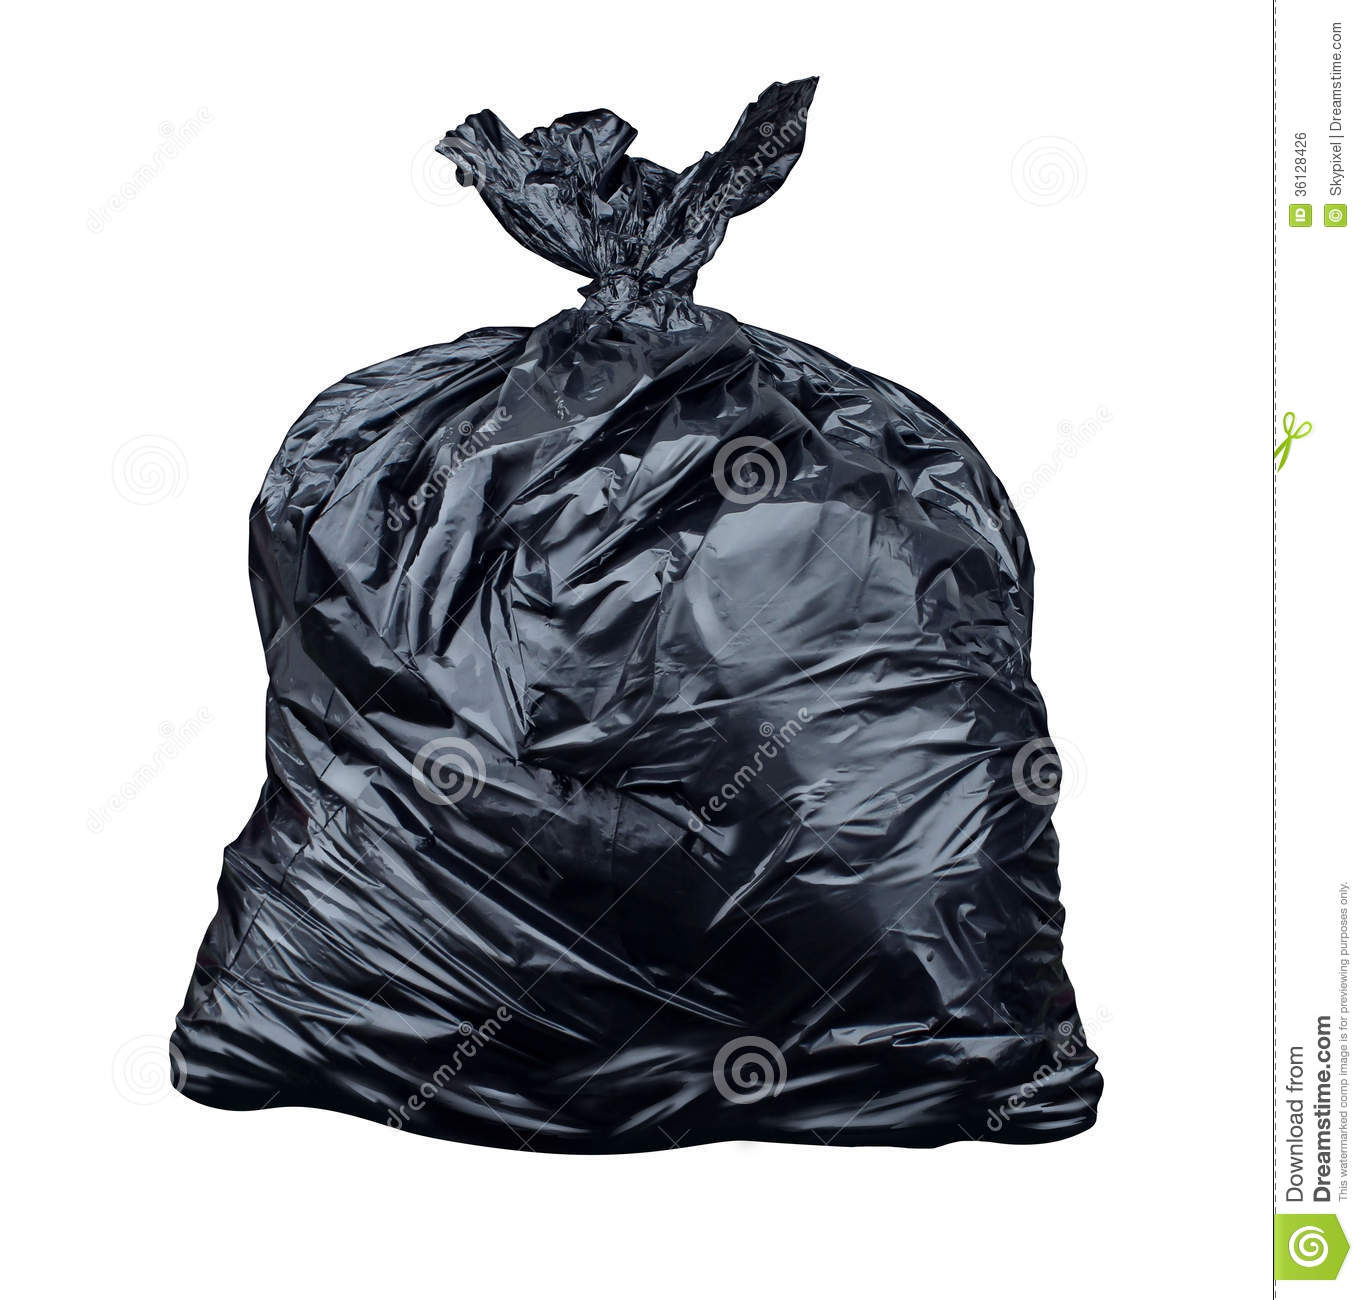 Garbage Bag Stock Photo Image Of Environmental Recycling